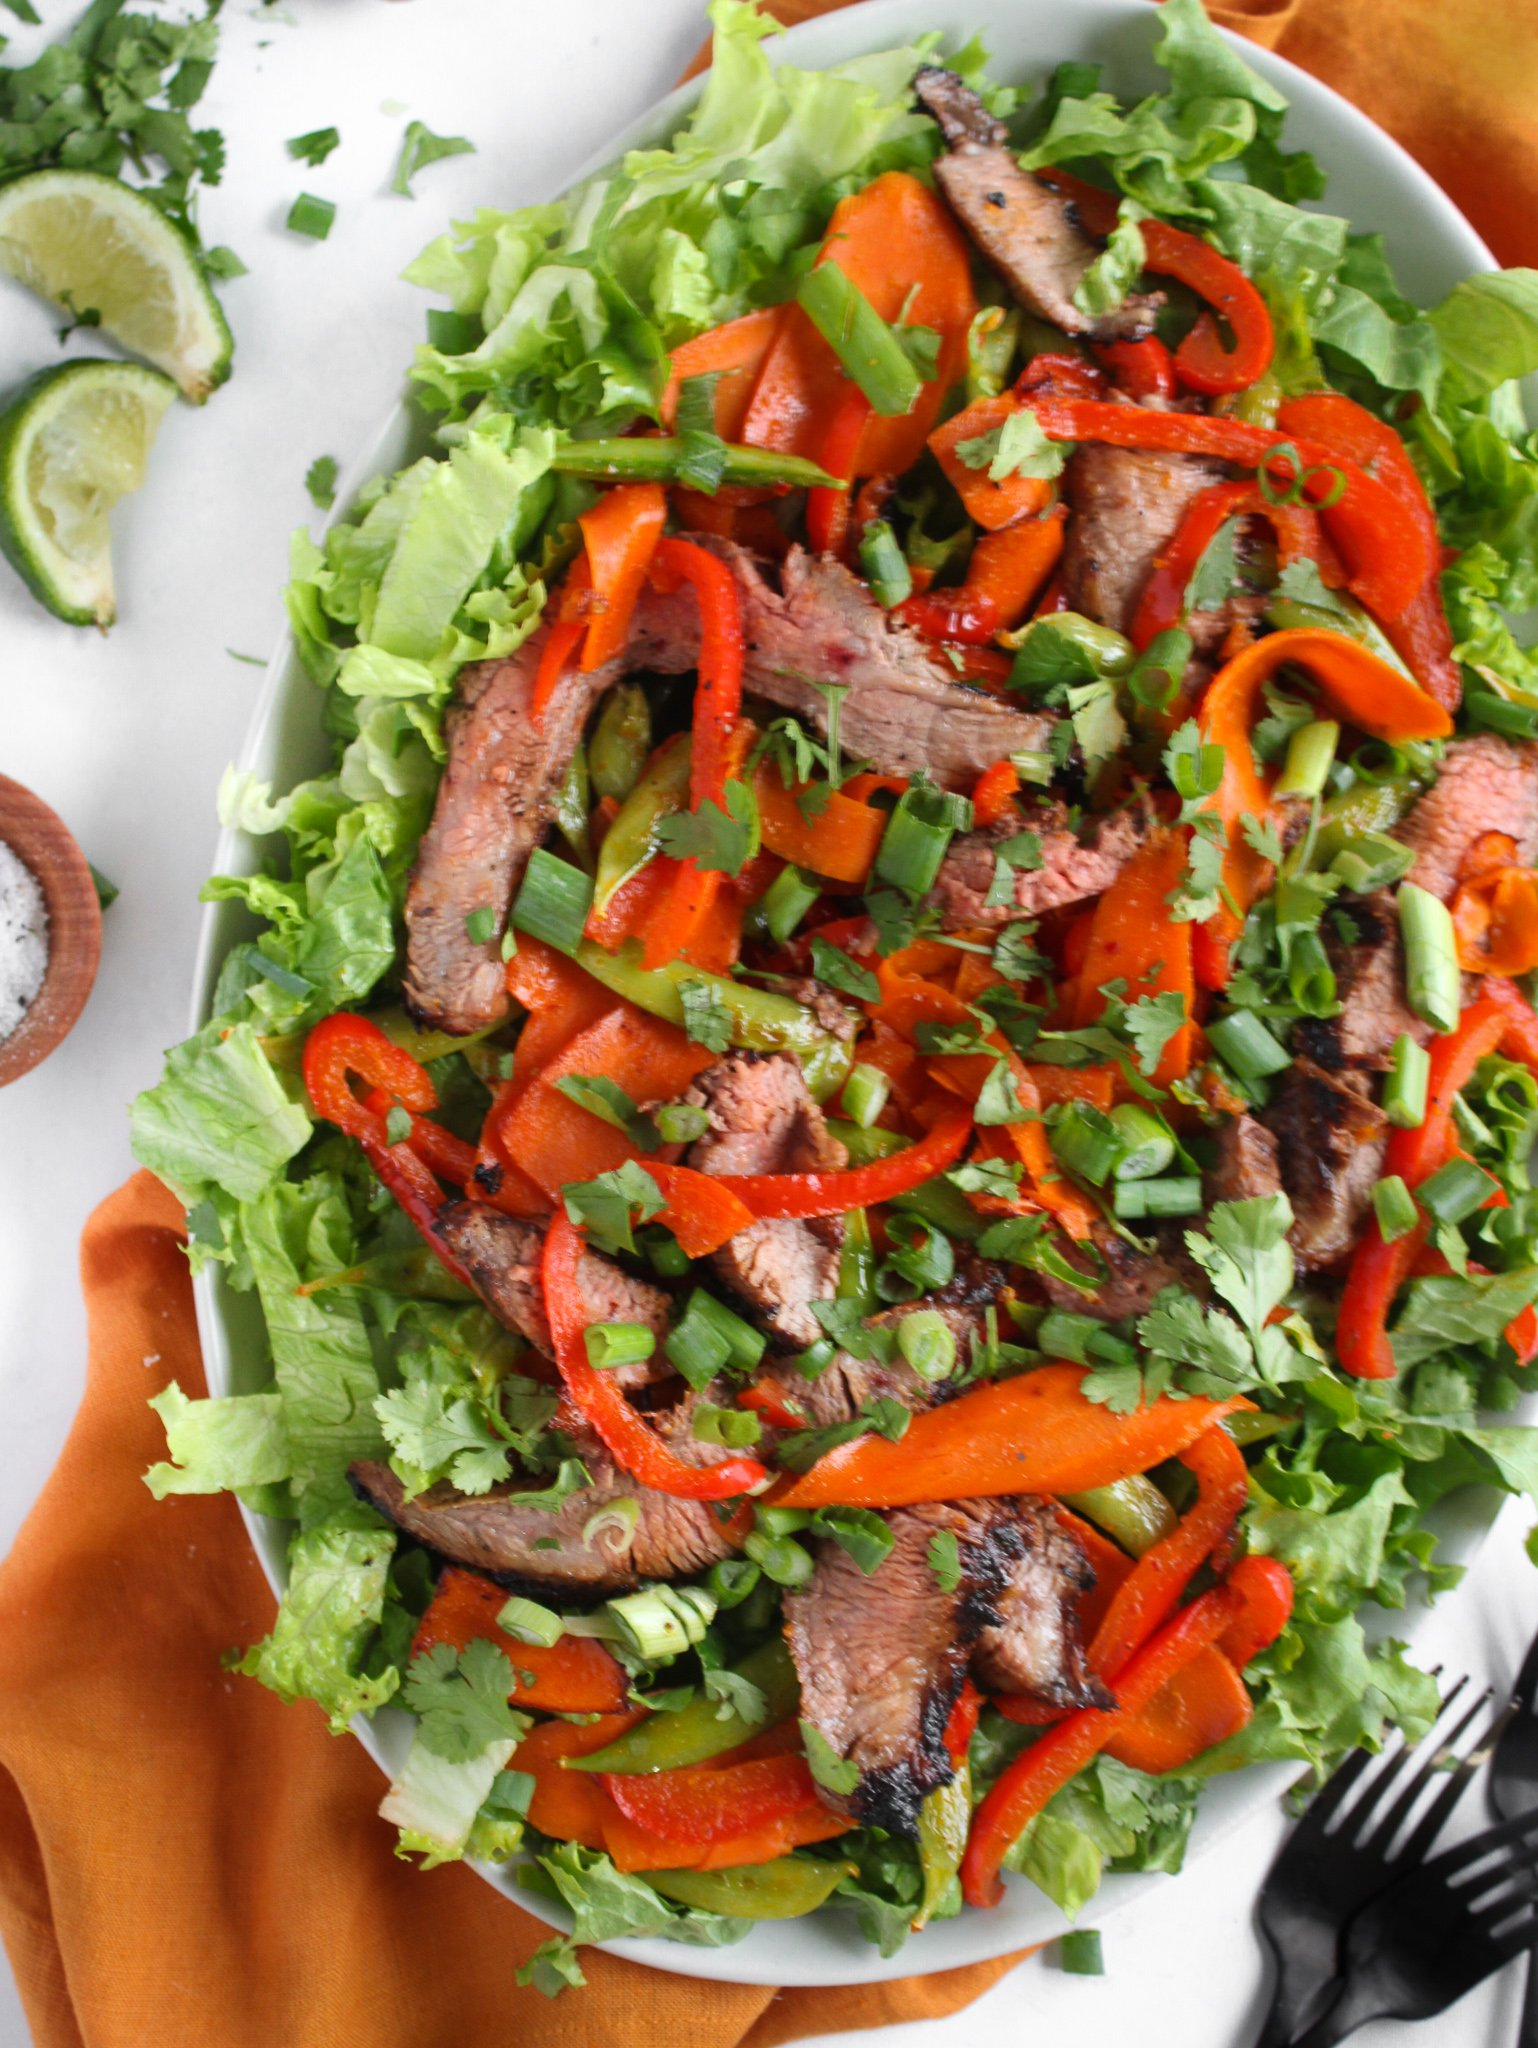 Grilled Asian Steak and Veggies salad on a white platter over a burnt orange table linen ready to be enjoyed for lunch or an easy dinner.